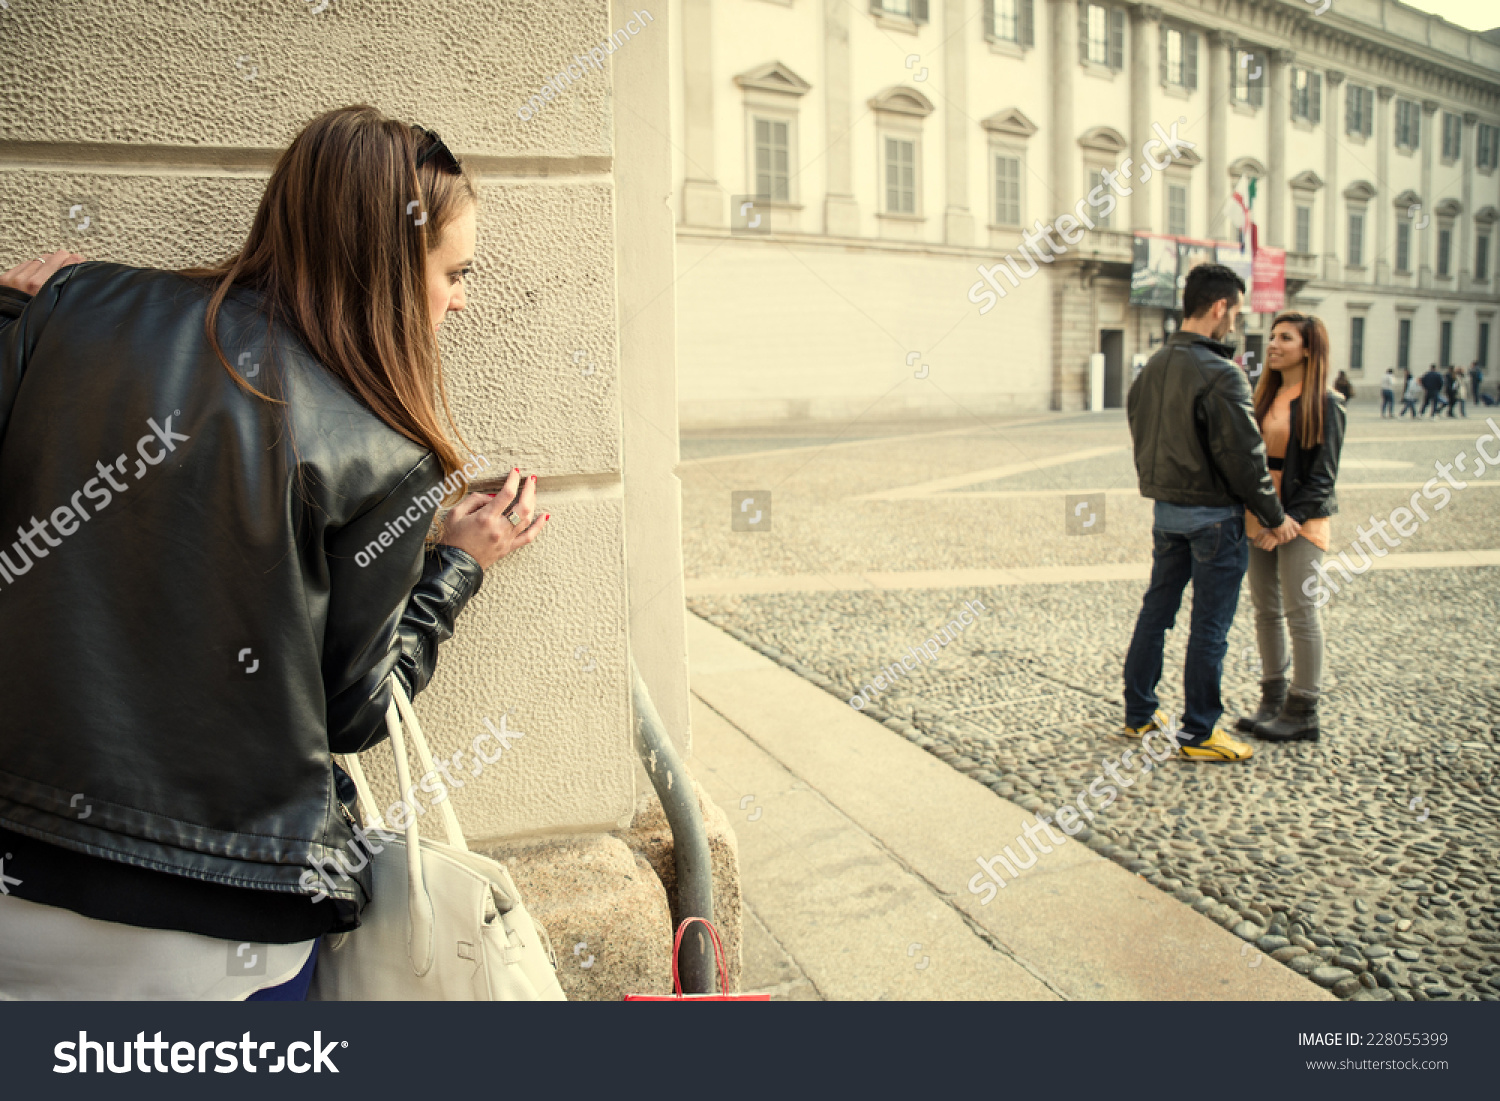 Image result for woman stalking her ex